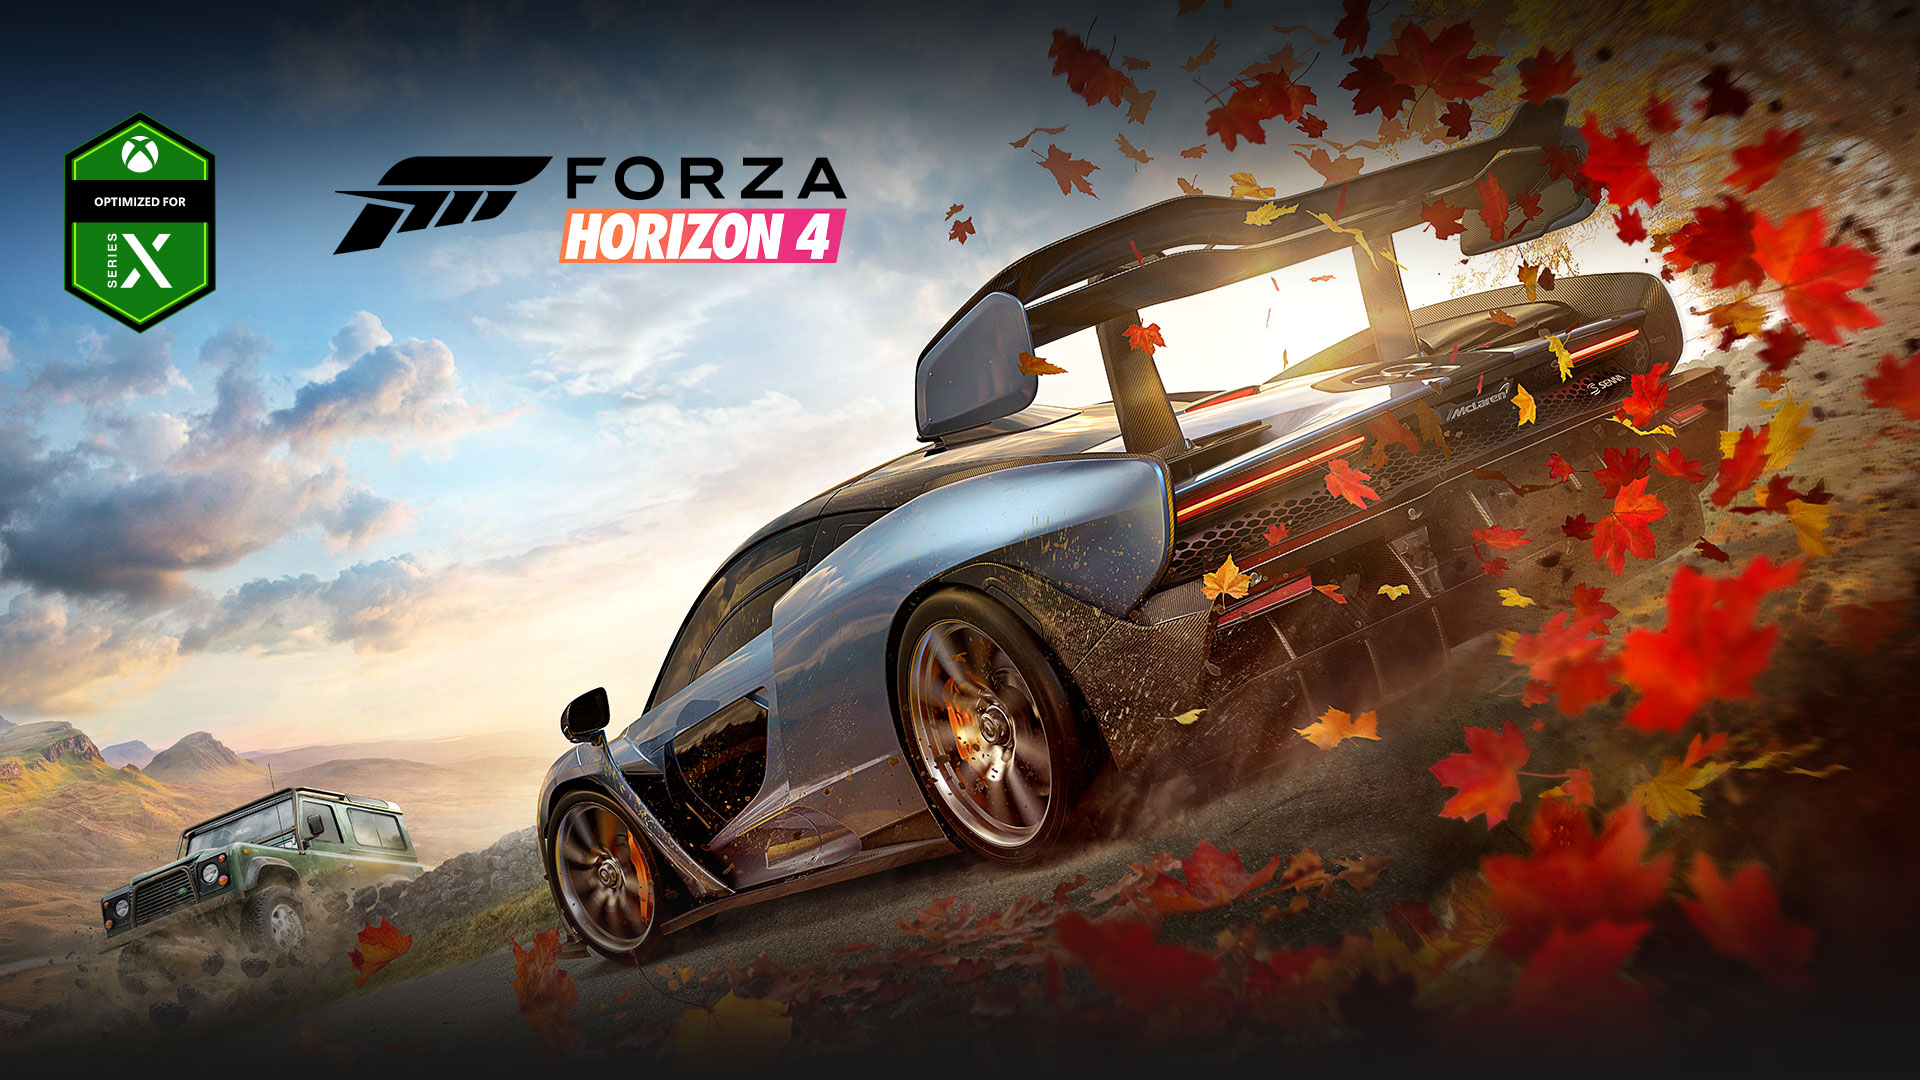 Optimized for Xbox Series X, Forza Horizon 4, two cars with leaves behind one of them